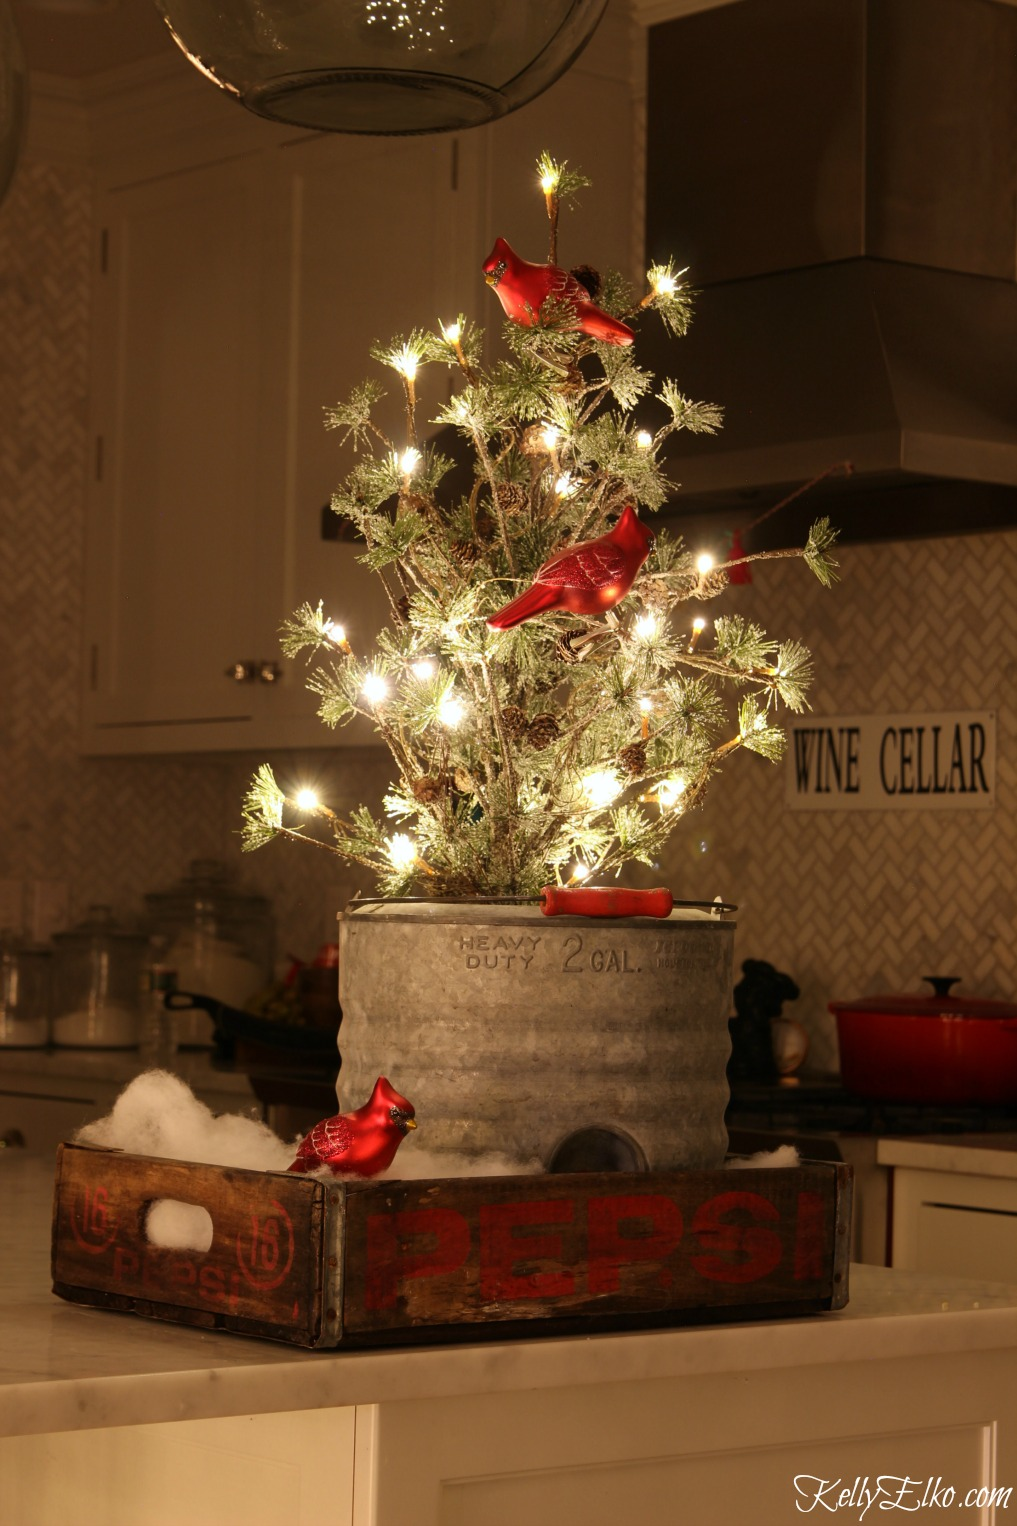 Christmas Lights at Night Home Tours - 35 homes by the glow of light - love this cute mini tree in vintage soda crate kellyelko.com